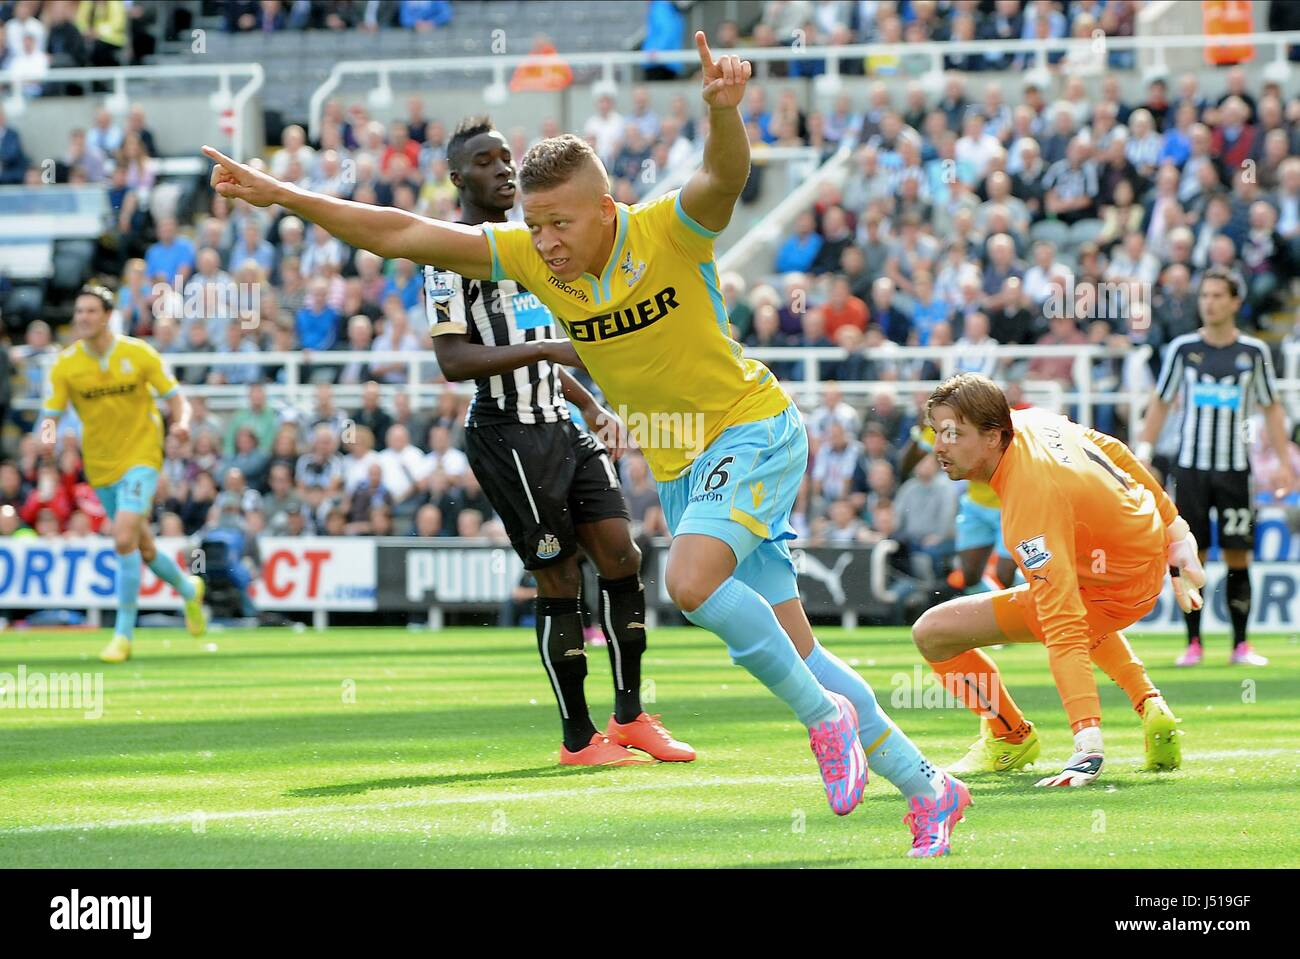 DWIGHT GAYLE SCORES NEWCASTLE UNITED FC V CRYSTAL ST JAMES PARK NEWCASTLE ENGLAND 30 August 2014 - Stock Image